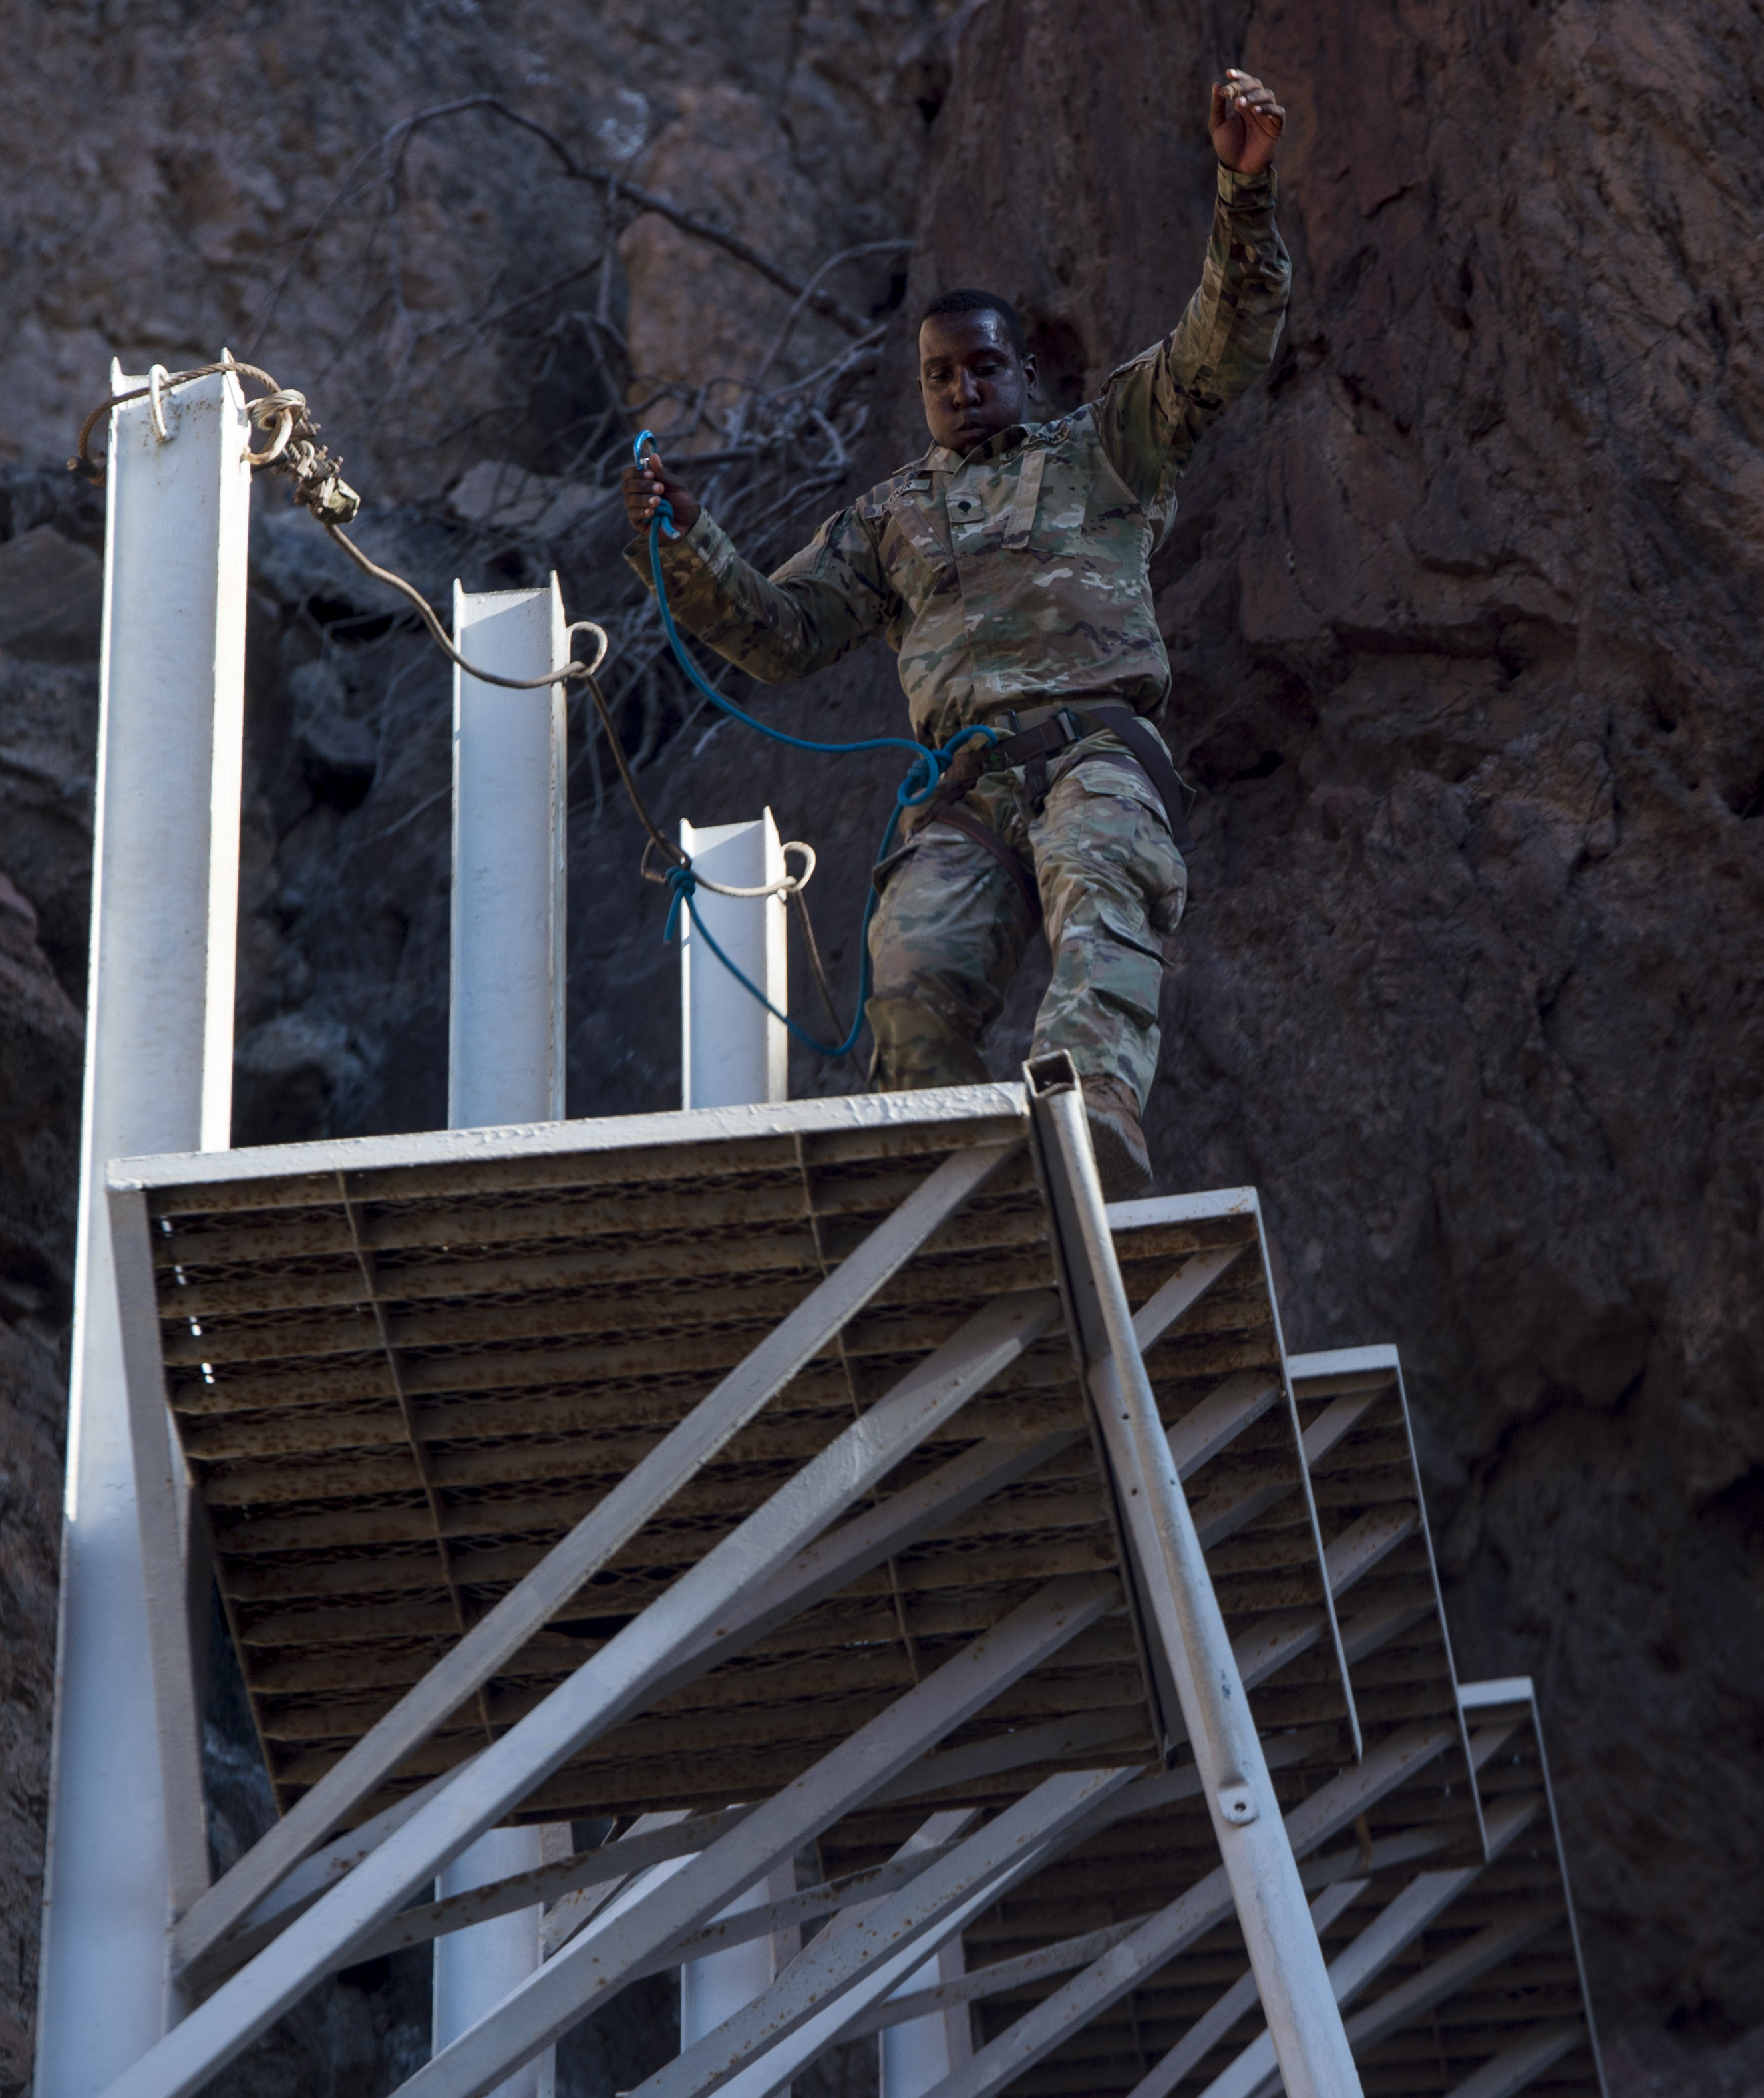 A U.S. Army Soldier assigned to the 3rd Battalion, 144th Infantry Regiment Task Force Bayonet, attached to the Combined Joint Task Force - Horn of Africa, jumps from one platform to another during the mountain obstacle portion of the French Desert Commando Course held at Arta, Djibouti, Dec. 3, 2017.Thirty U.S. service members participated in the obstacle course alongside French marines assigned to the 5th Overseas Interarms Regiment, Djibouti. (U.S. Air Force photo by Staff Sgt. Timothy Moore)